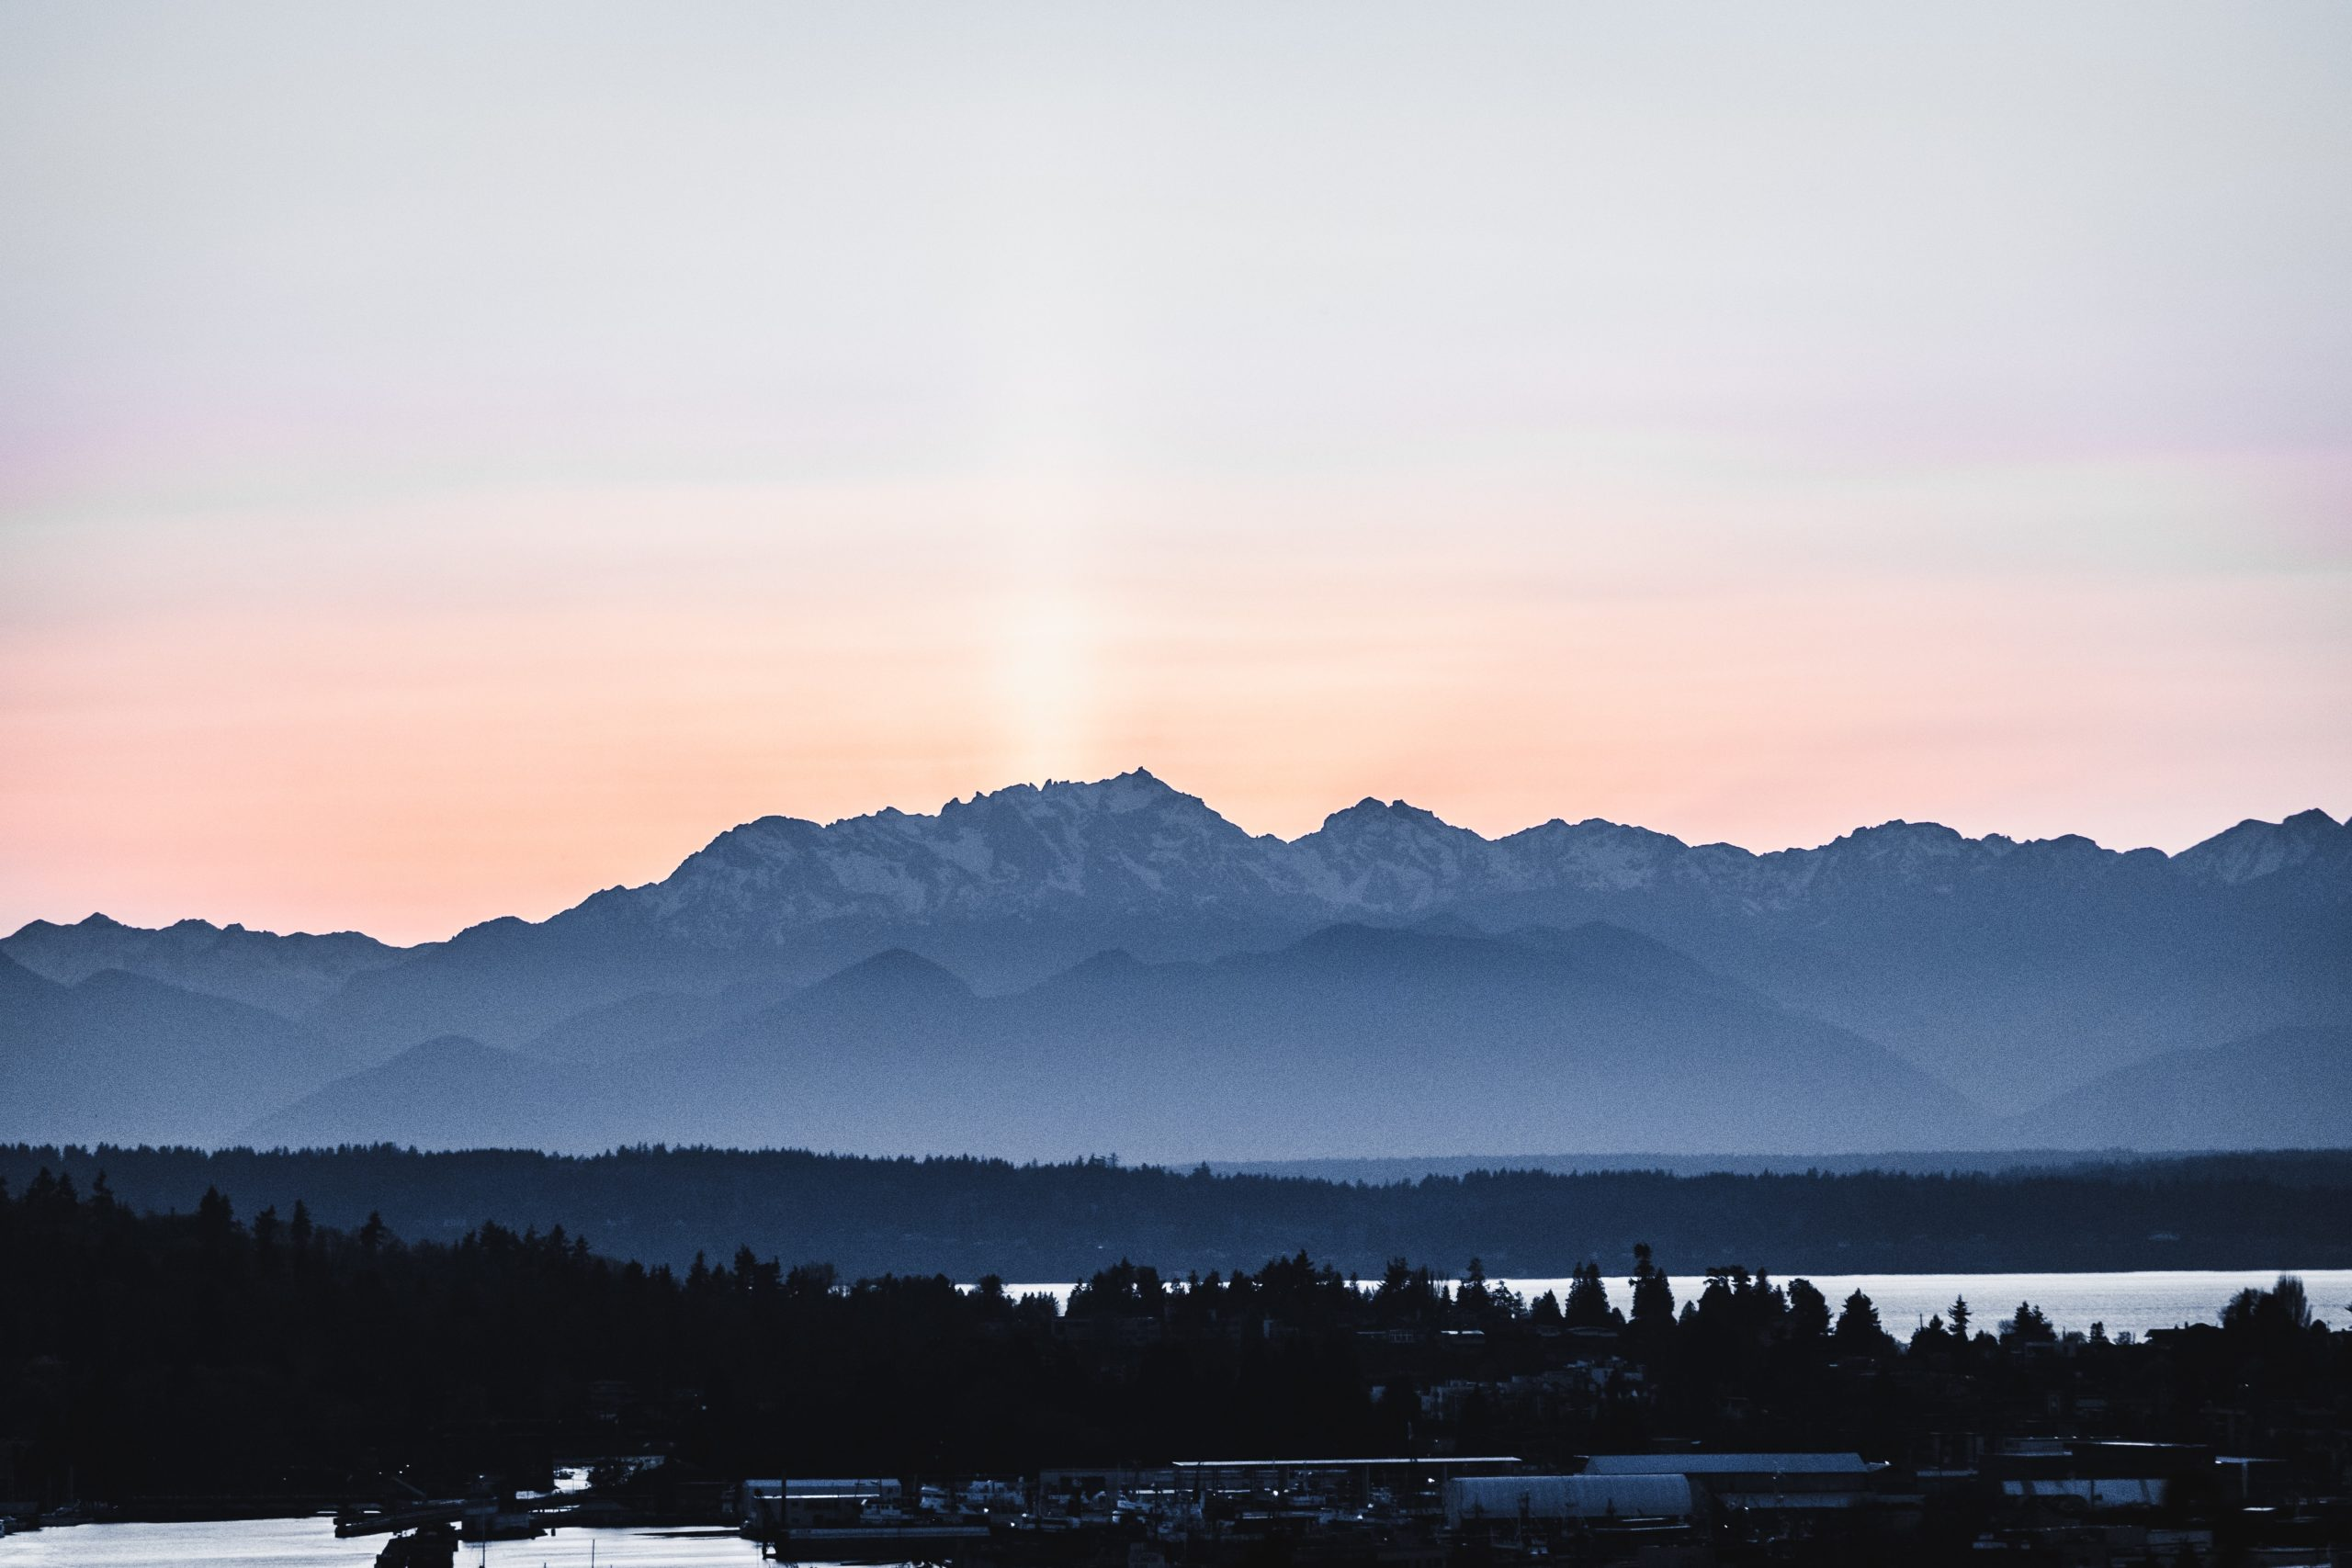 Sunset over the Olypmic Mountains by David H on Unsplash.com